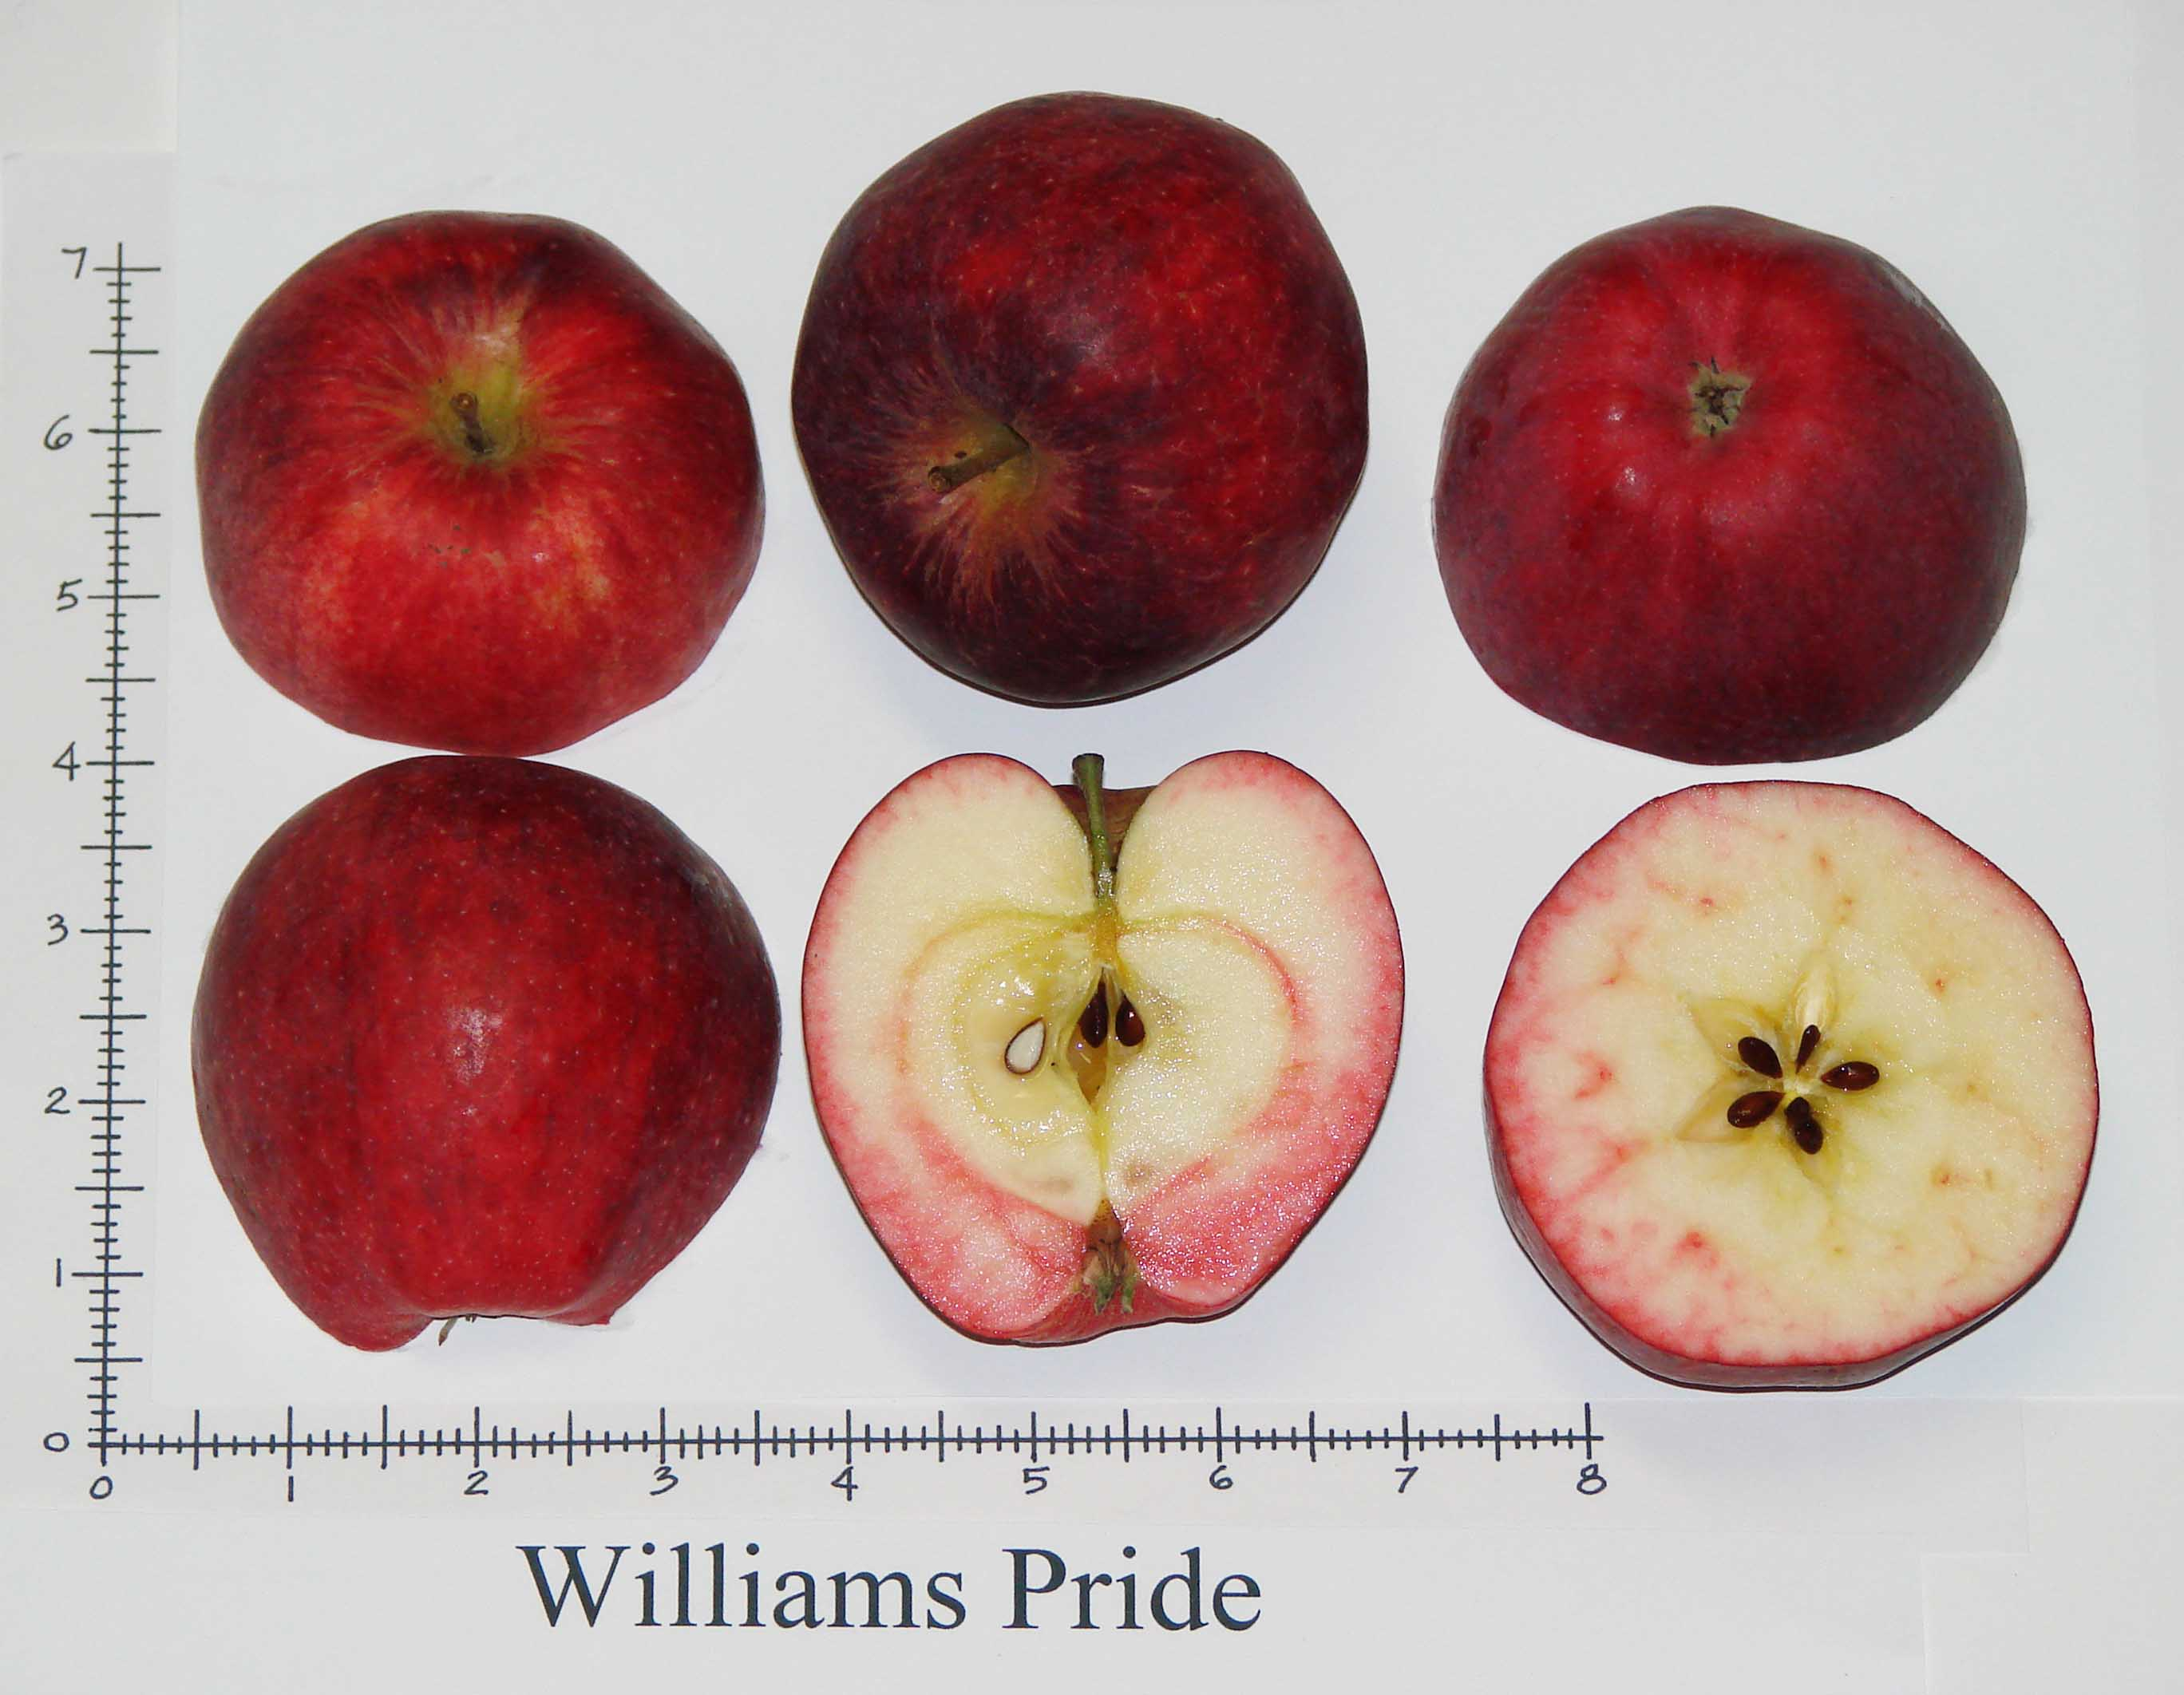 Williams\' Pride